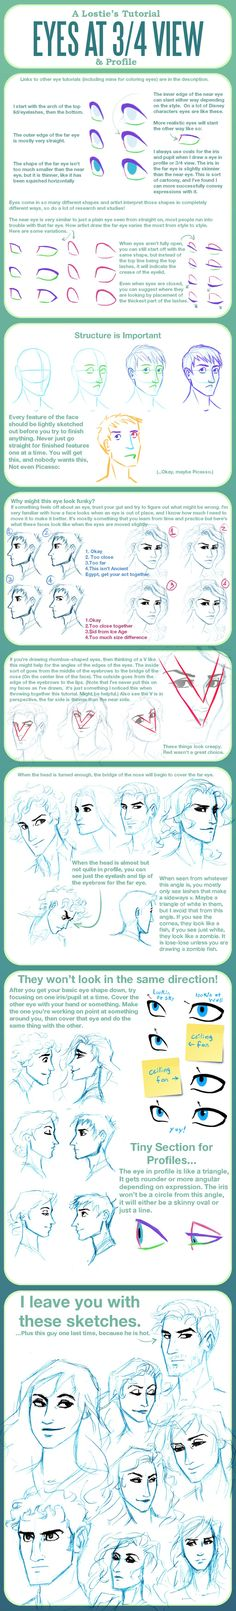 Drawing reference face angles animation new ideas – Drawing Techniques Eye Drawing Tutorials, Drawing Techniques, Art Tutorials, Drawing Poses, Drawing Tips, Drawing Art, Drawing Ideas, Drawing Sketches, Sketch Ideas